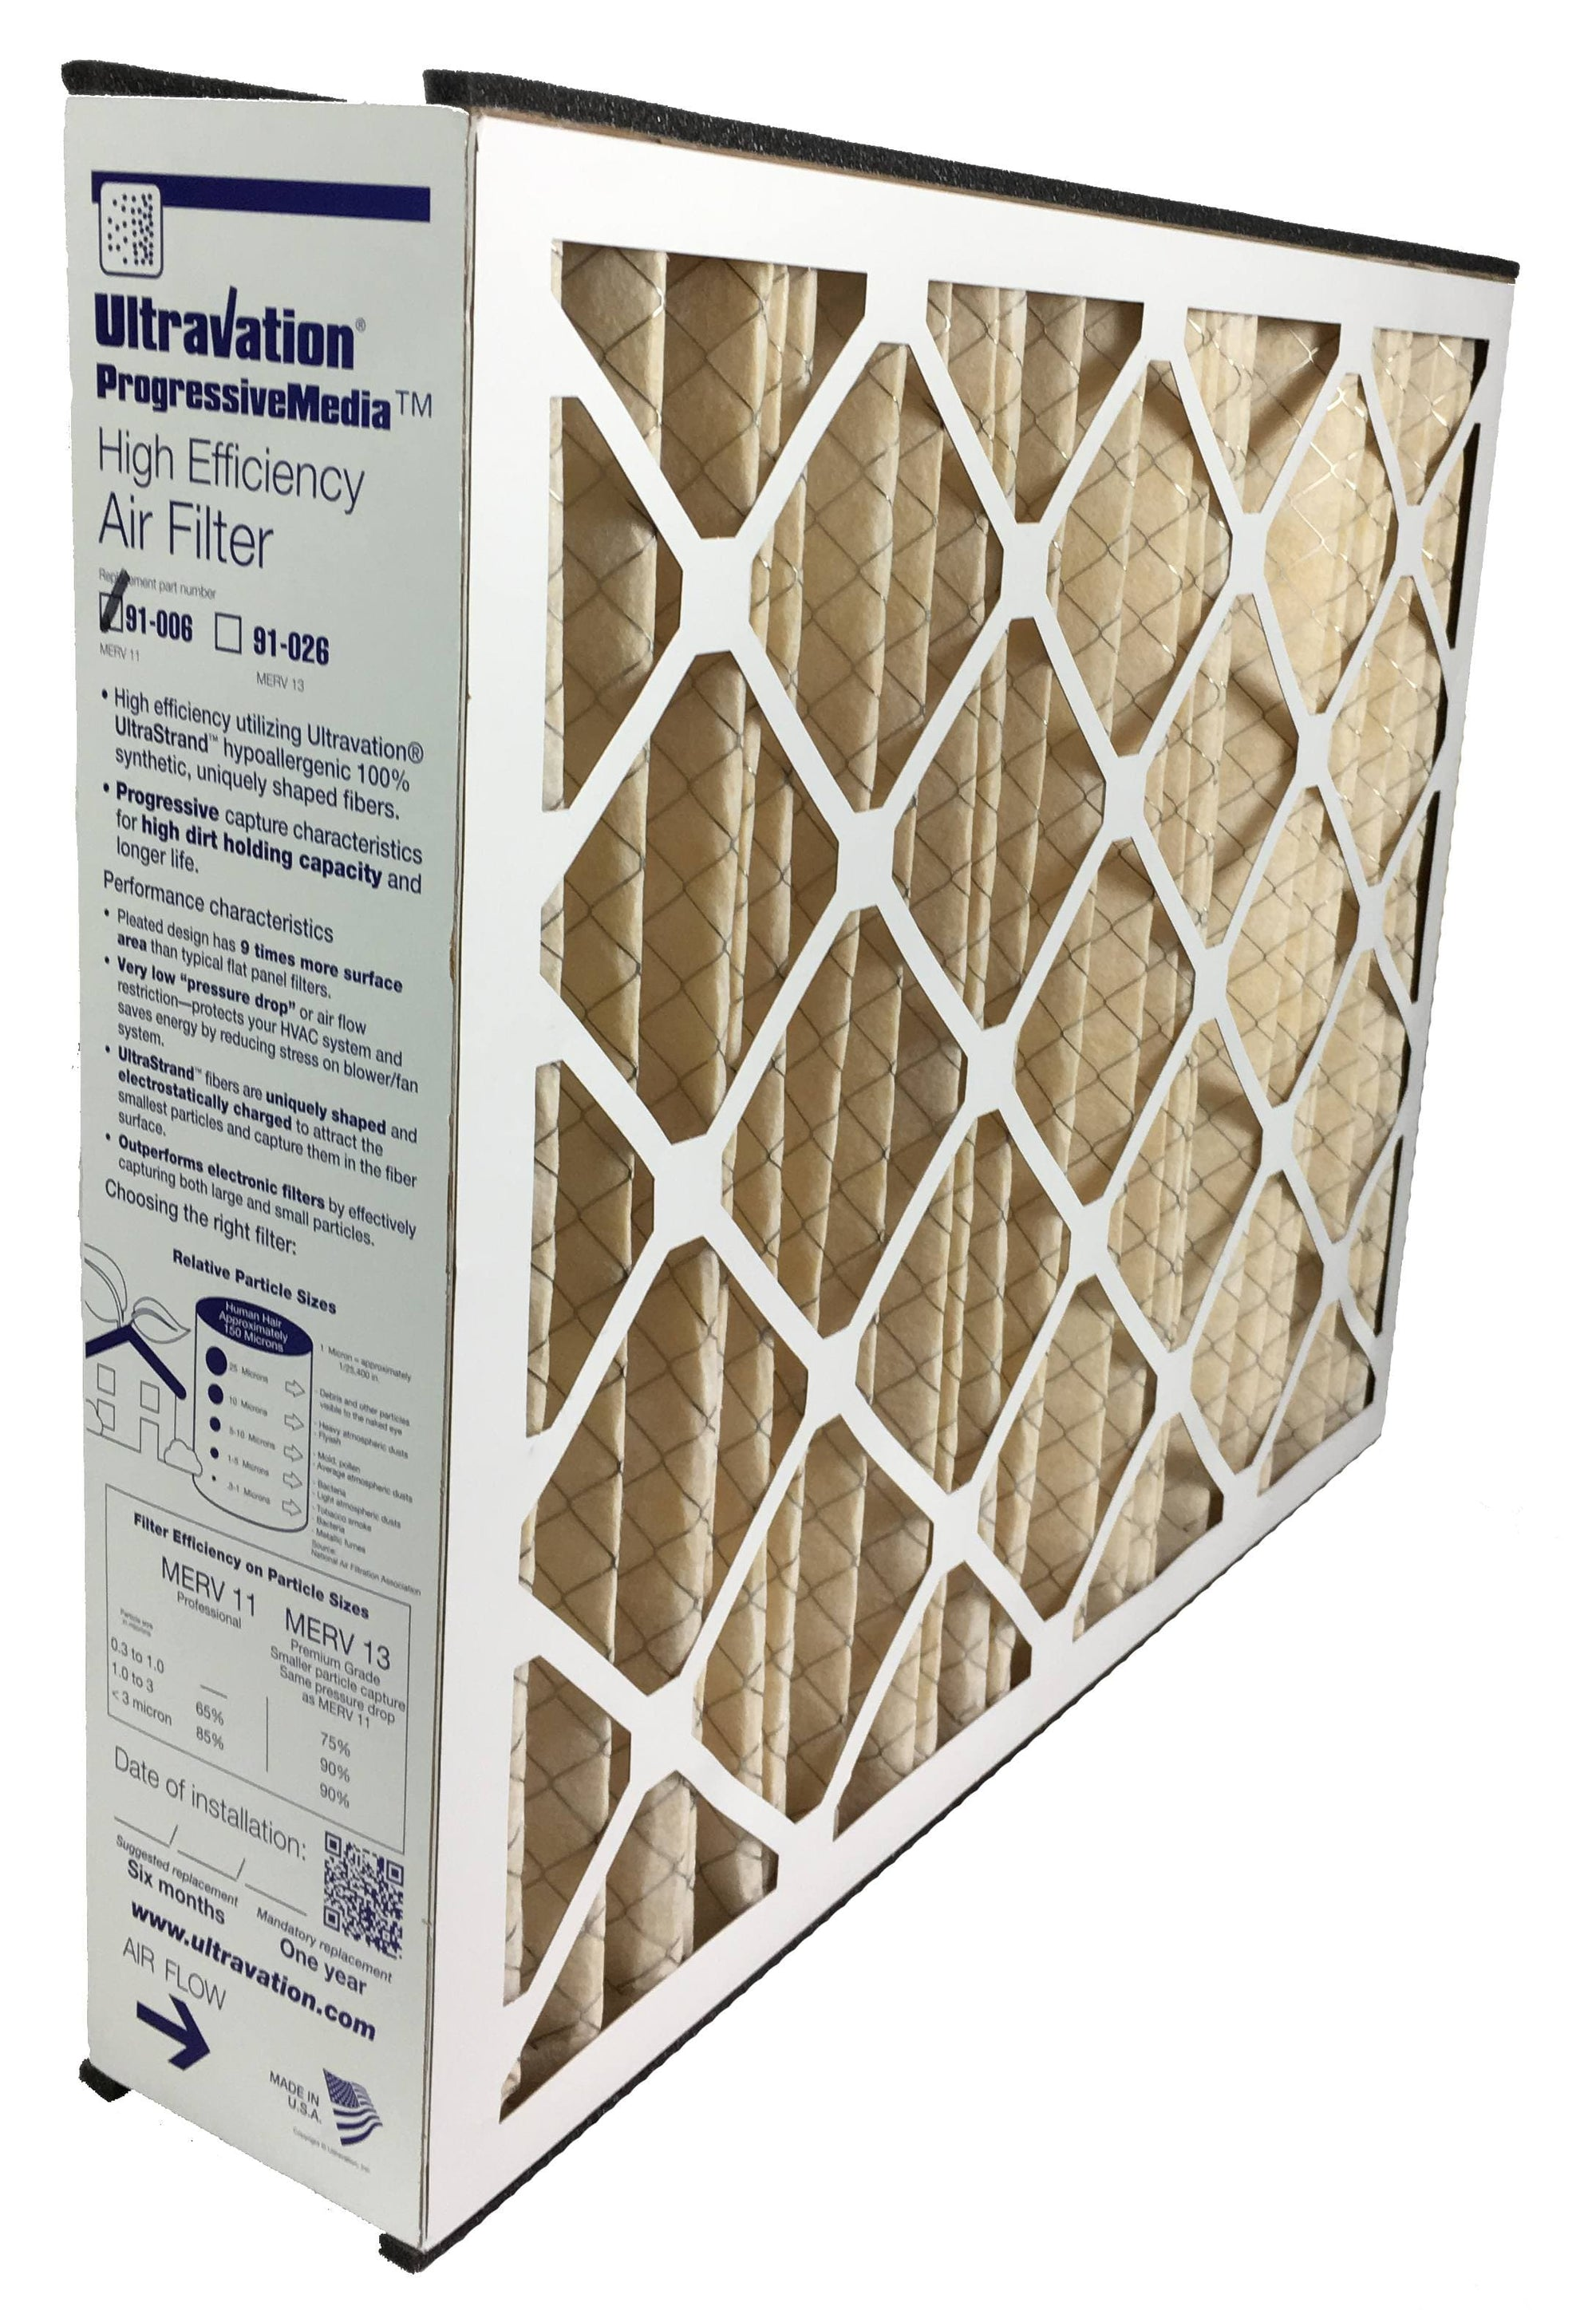 Whole House Airfilter - Ultravation 91-006 20x25x5 MERV 11 Replacement Furnace Filter - 1 Pack